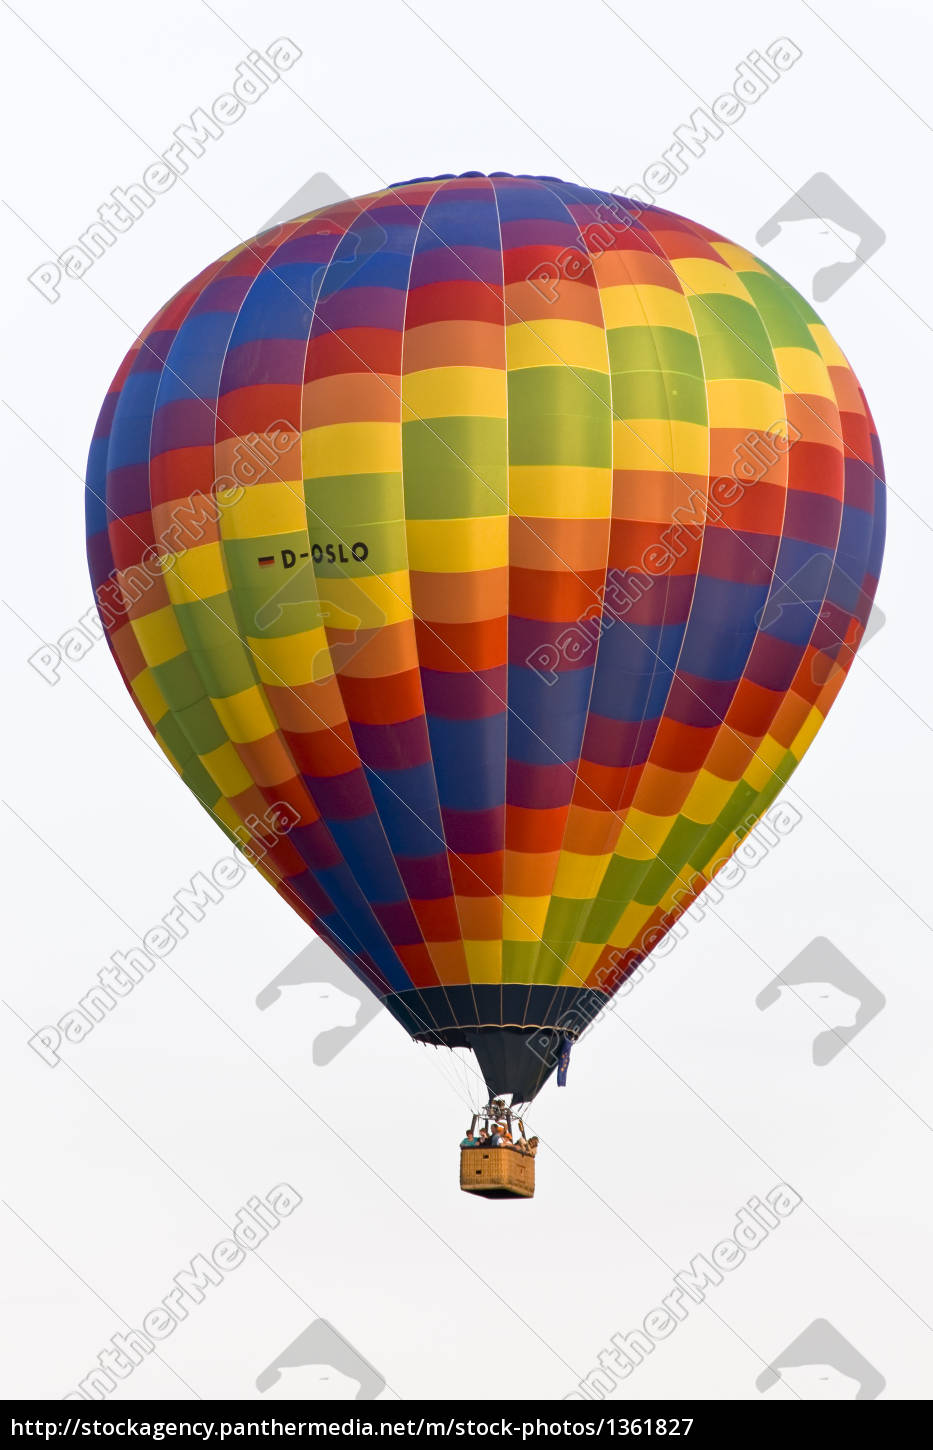 ascended, balloon - 1361827